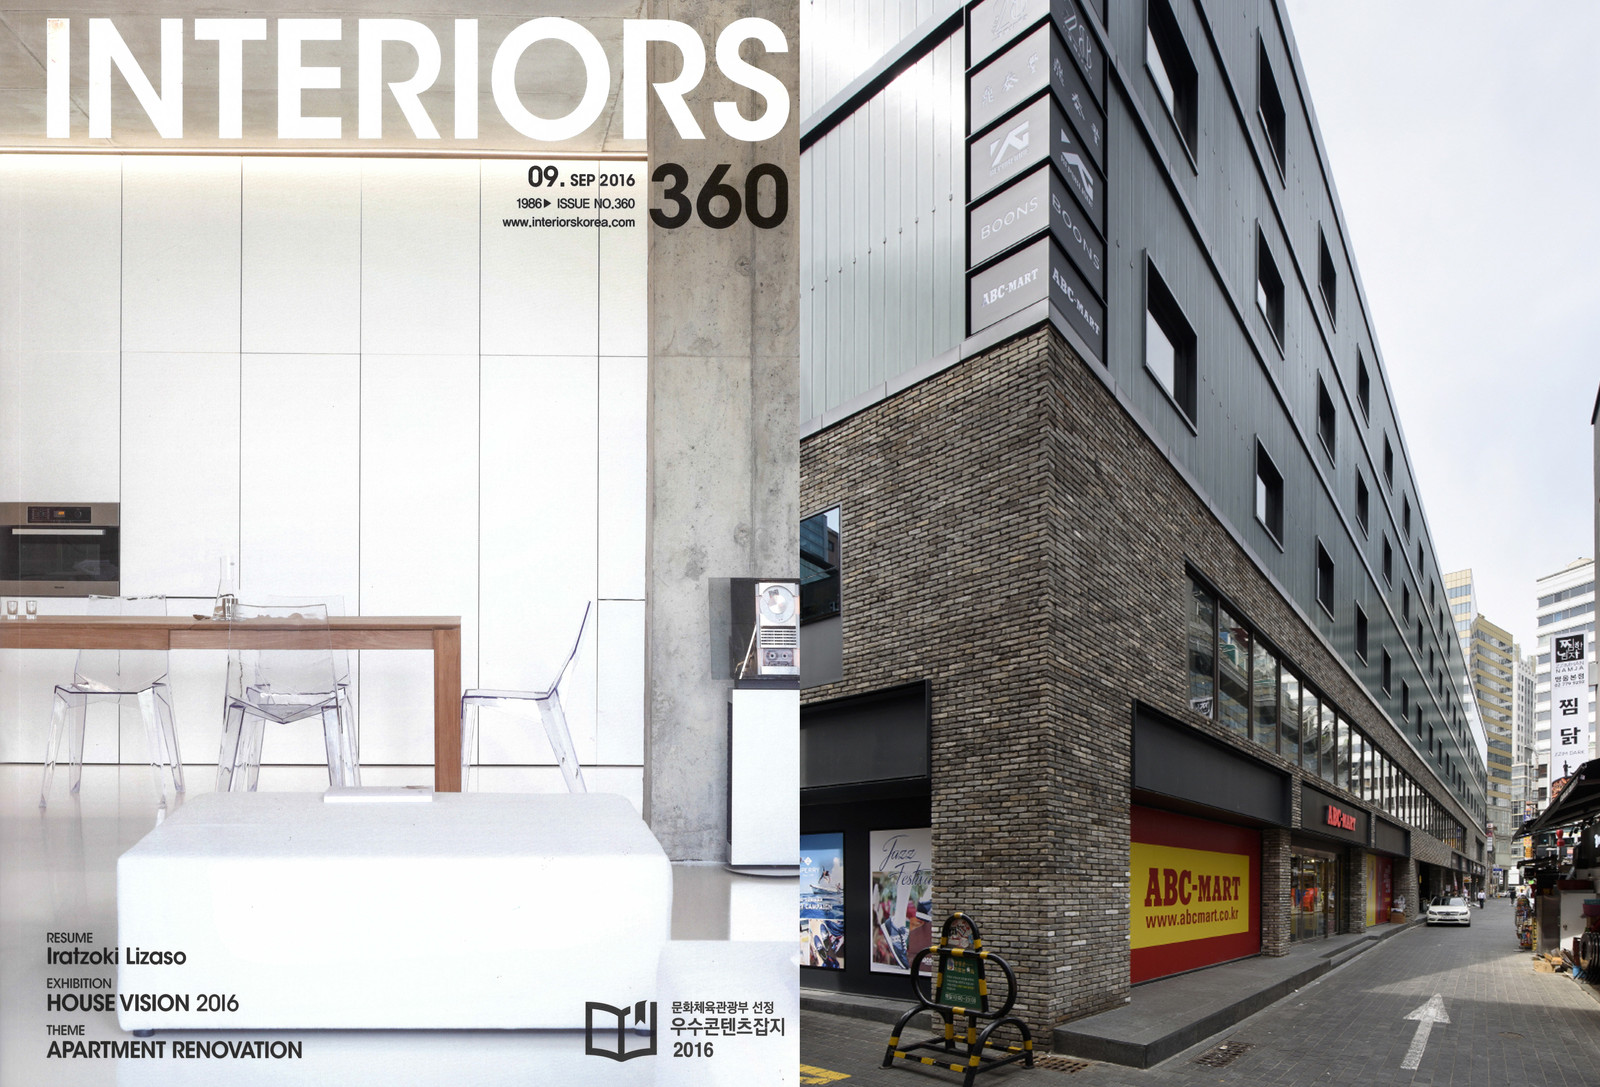 Interview 'Hotel 28' in September's edition of Magazine 'Interiors'